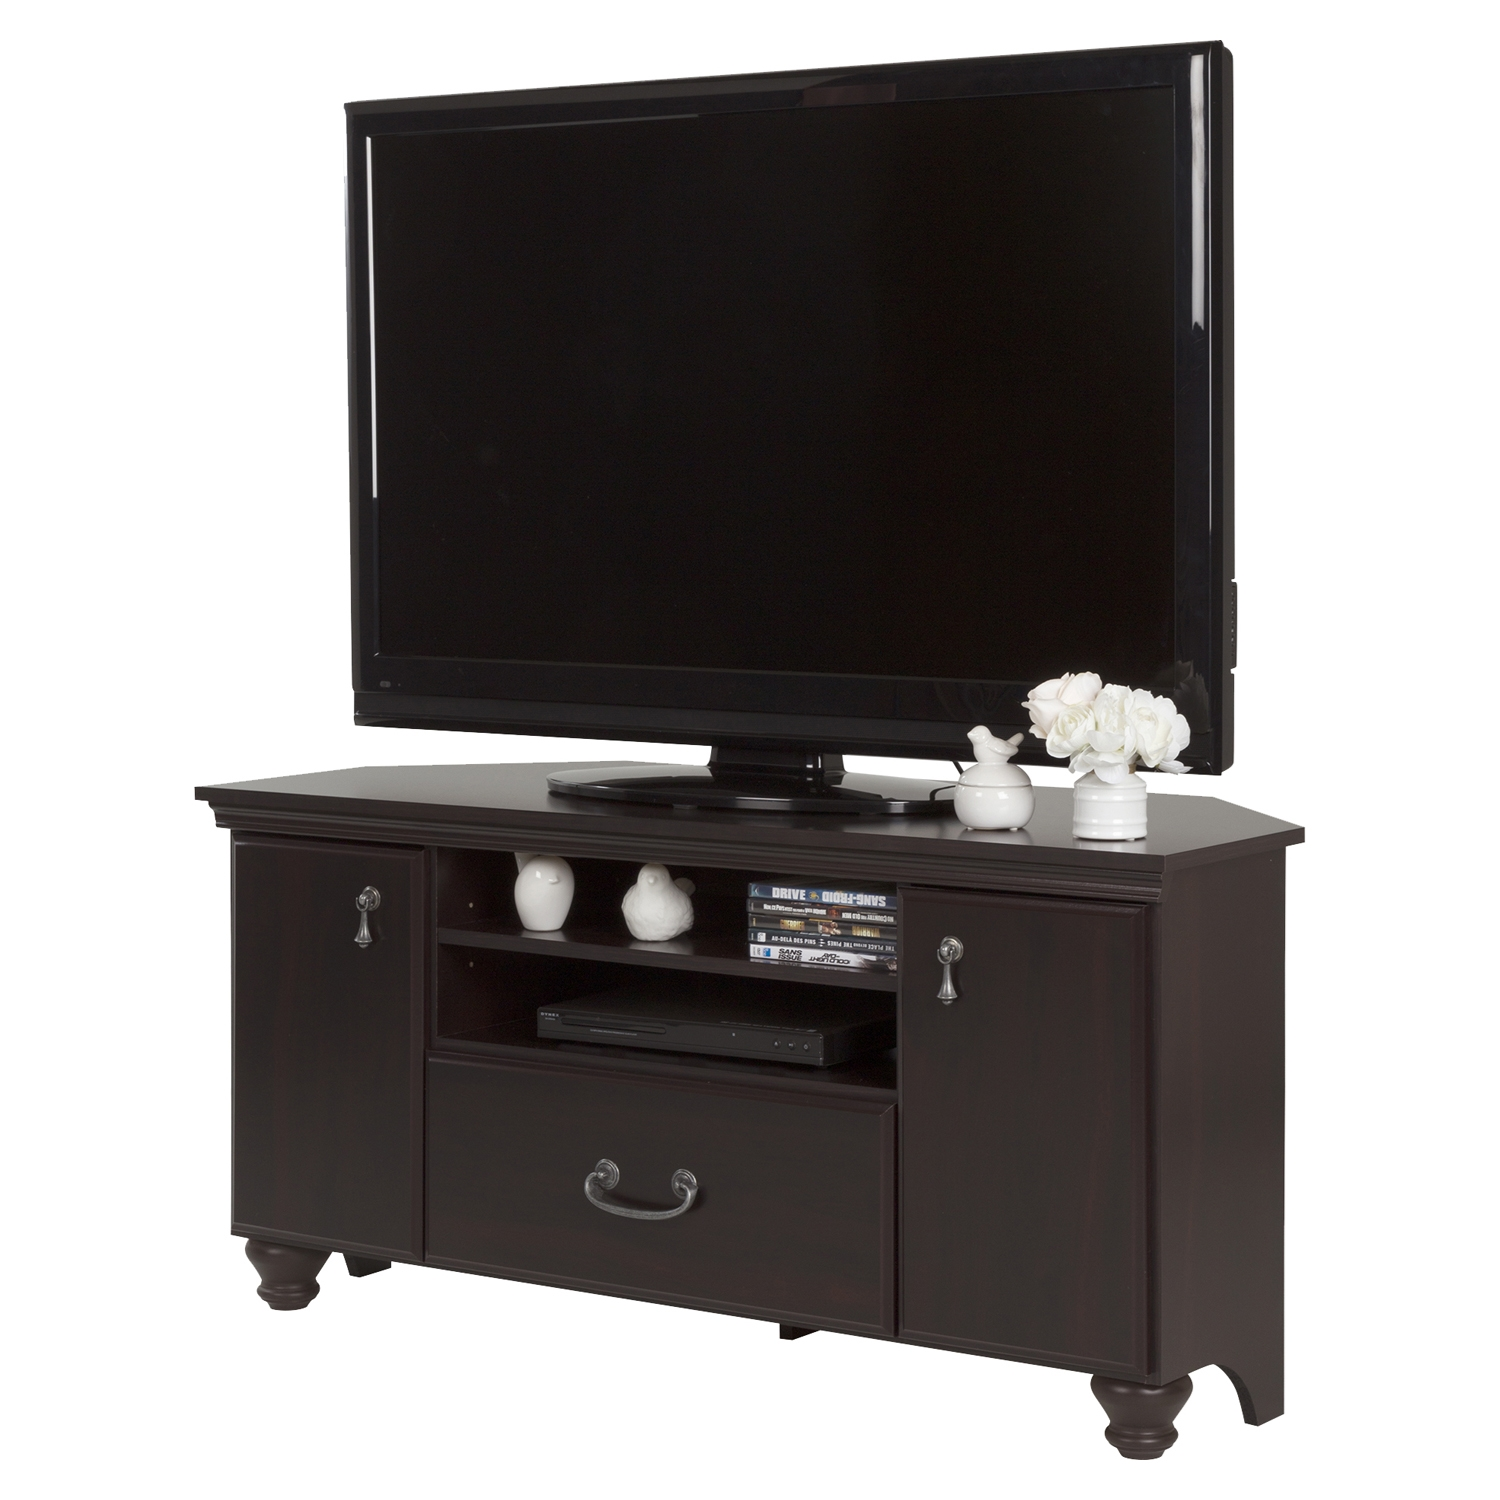 Noble Corner TV Stand - 2 Doors, 2 Shelves, Dark Mahogany - SS-10380